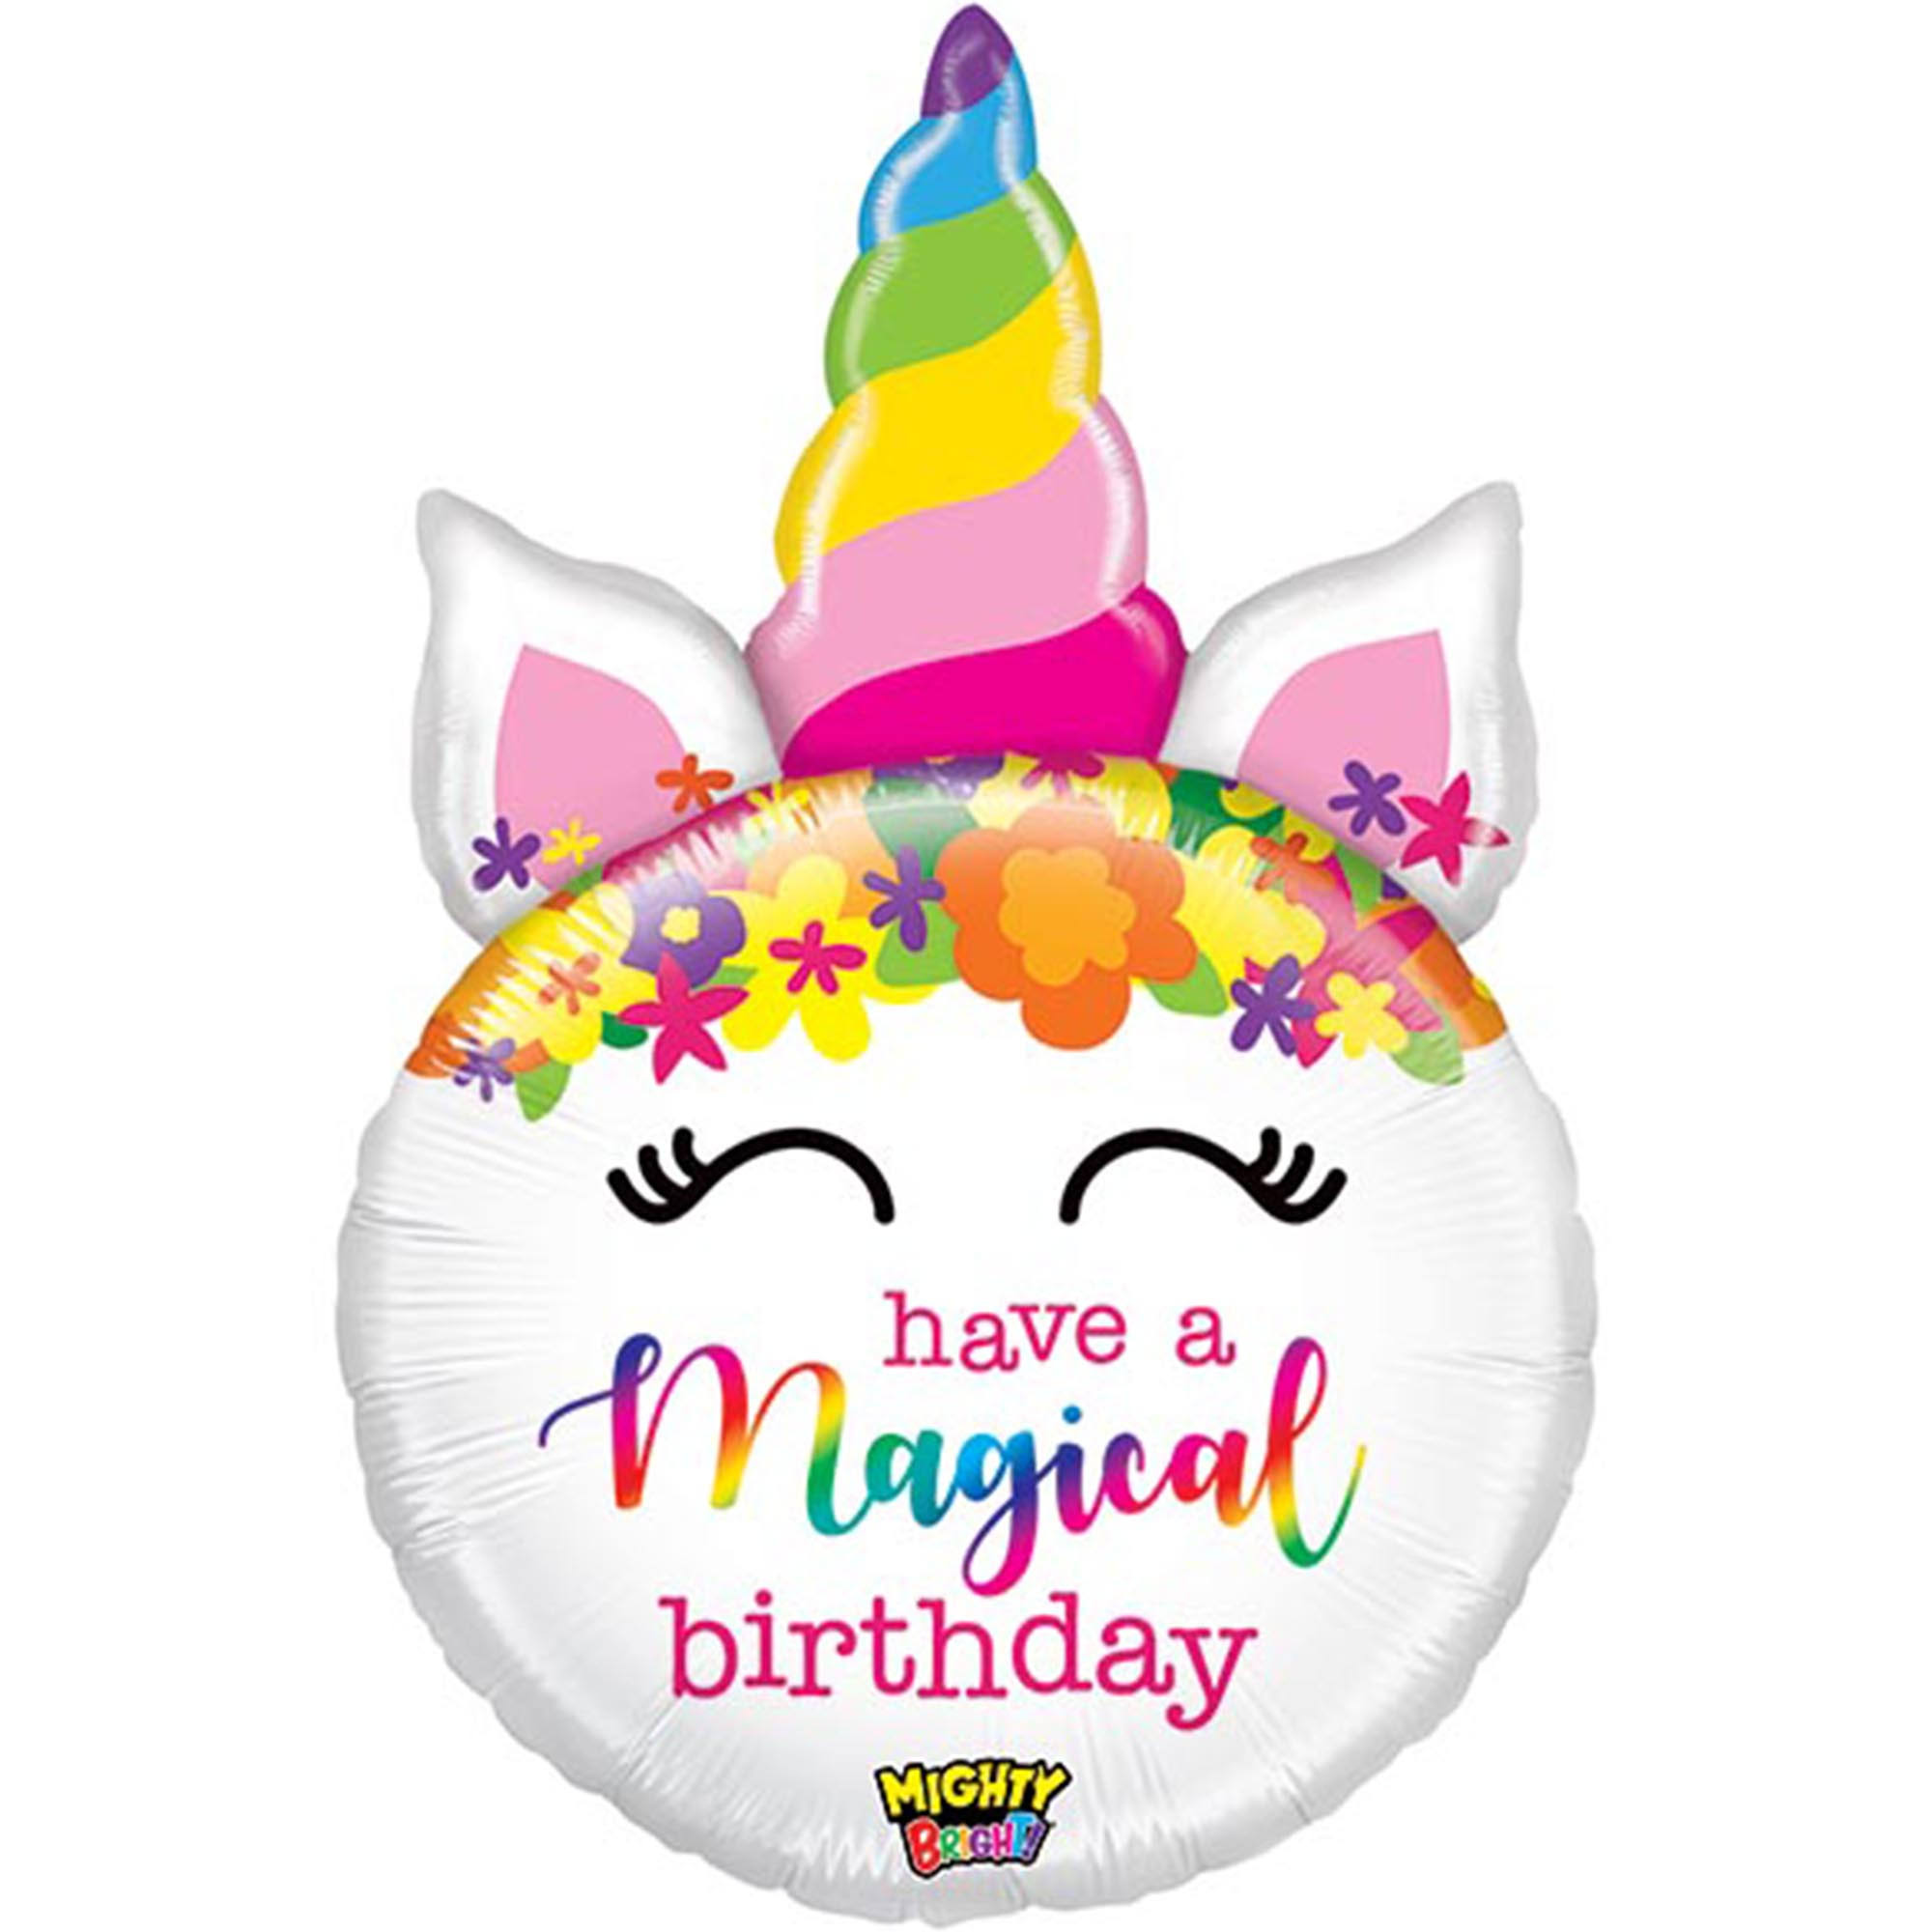 Betallic Unicorn Birthday Balloon - 80cm